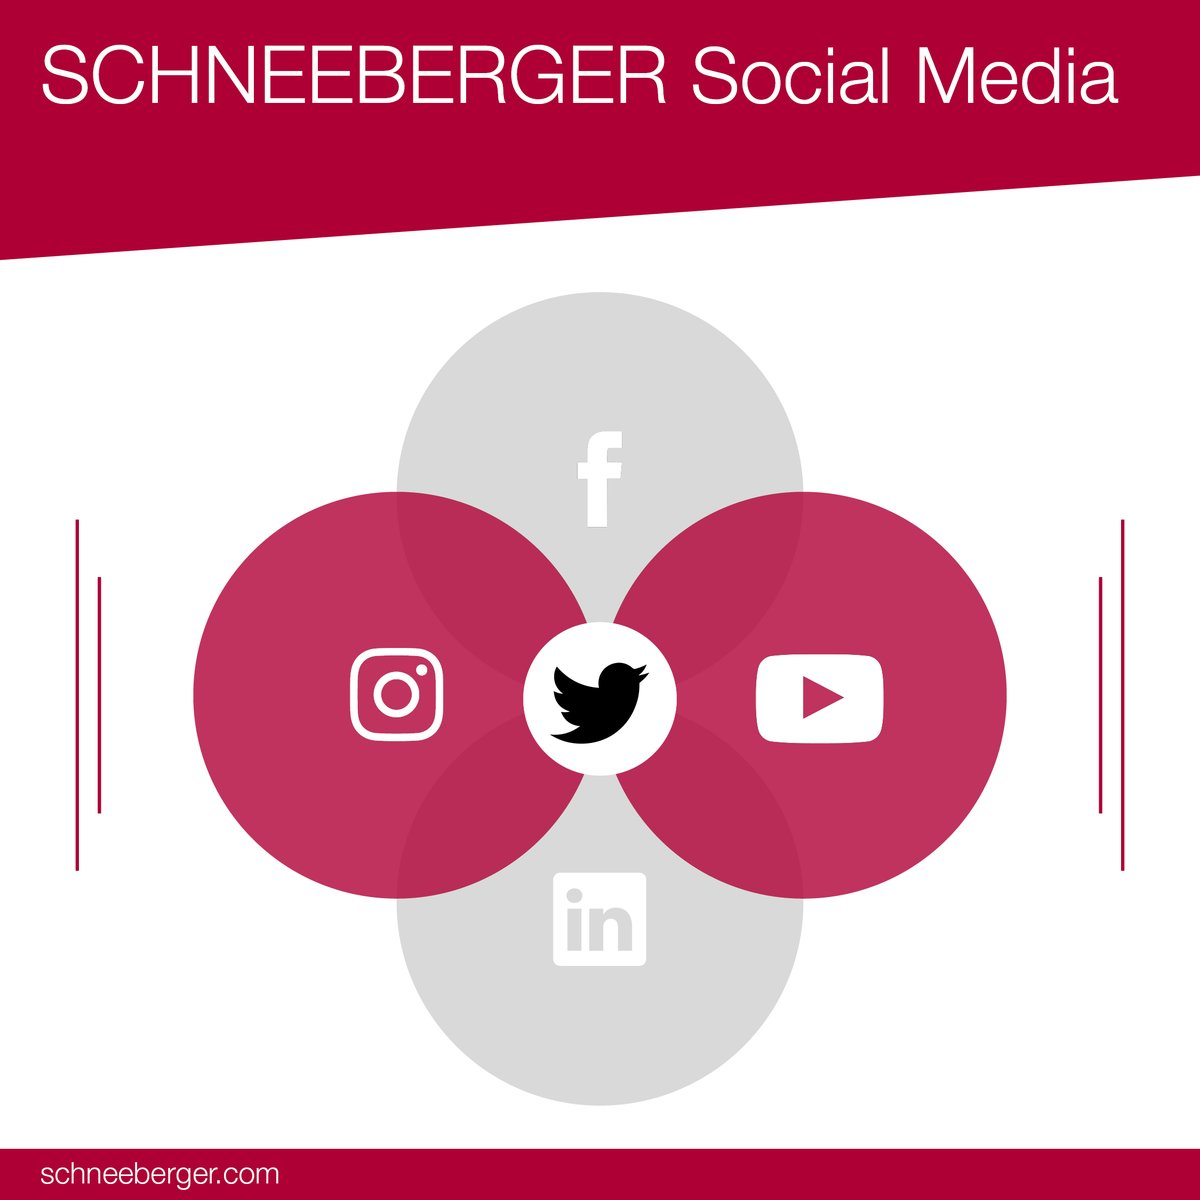 Do you know our other social media channels? We are also active on LinkedIn, Instagram, Youtube and Facebook.  Take a look. https://t.co/PjAbbpOAee